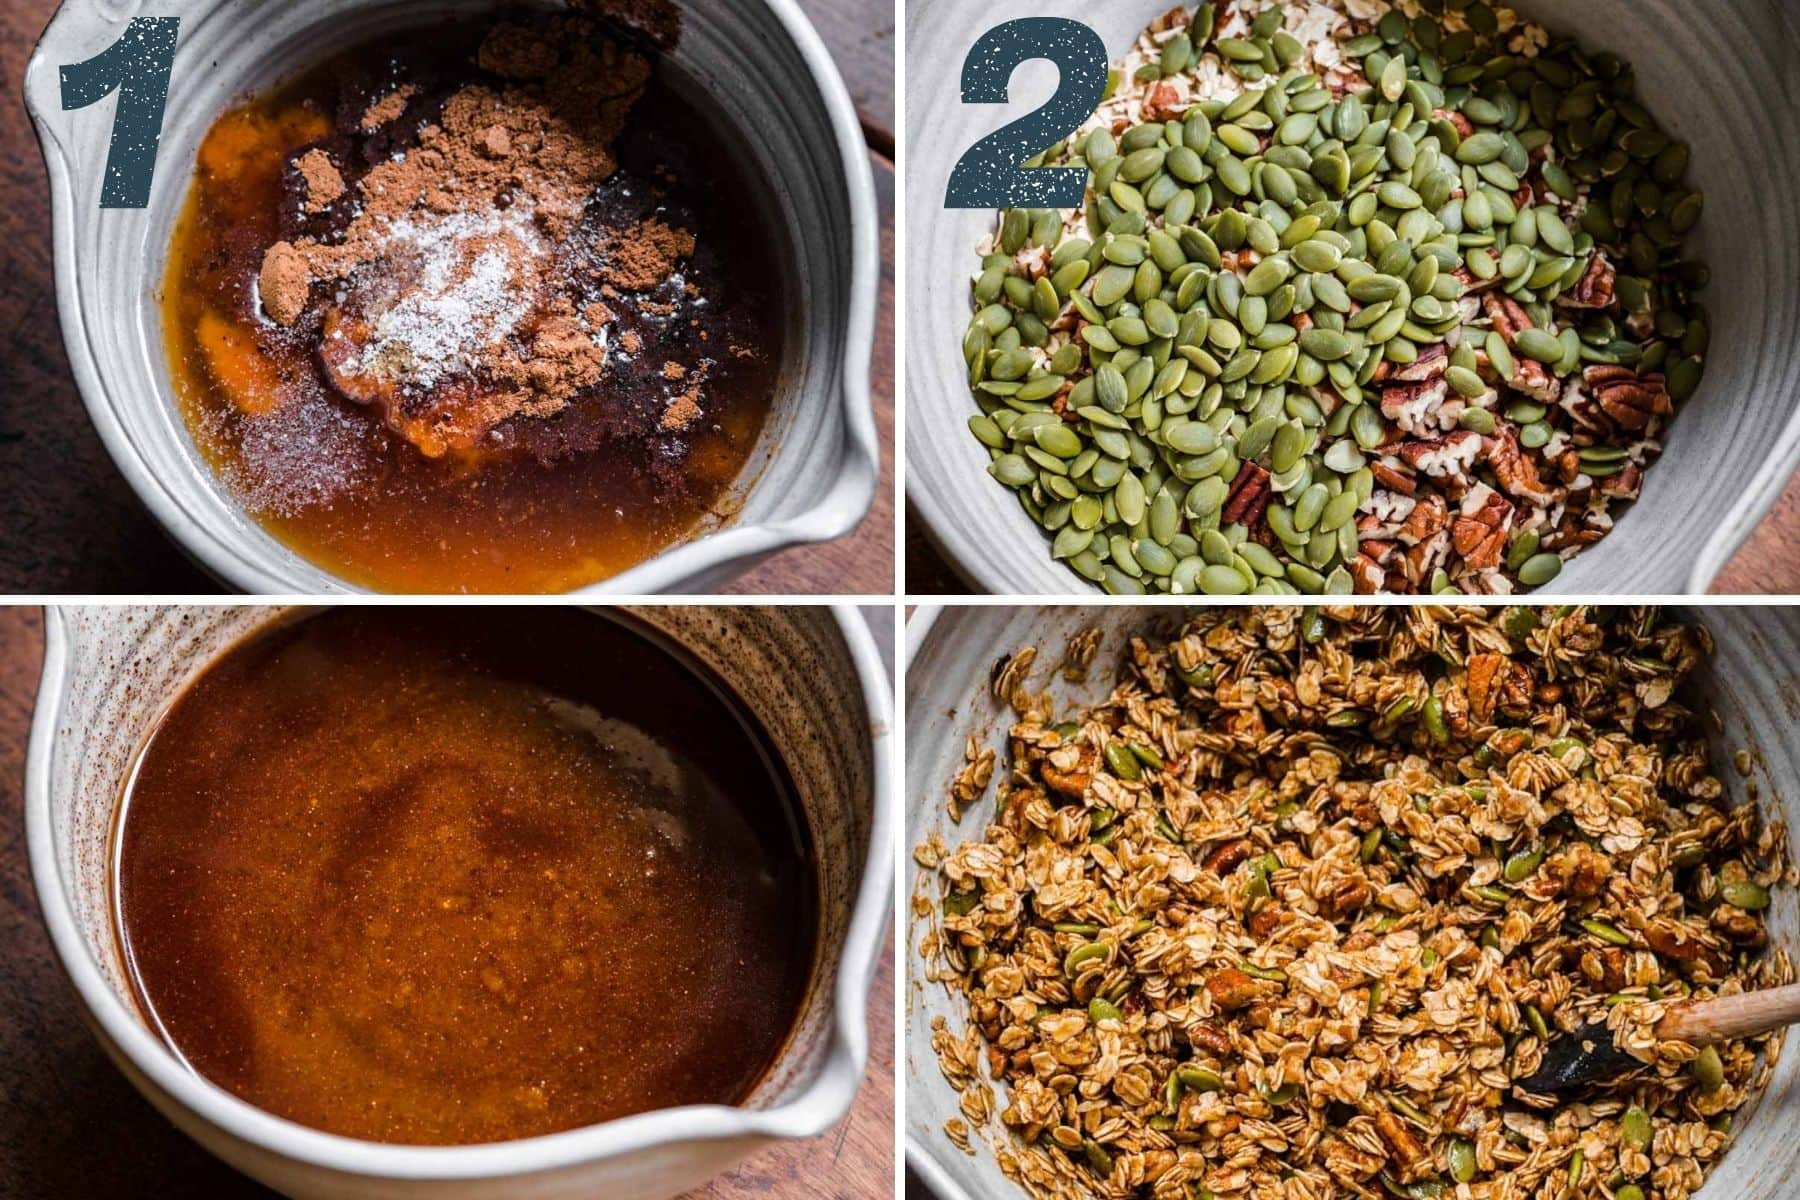 On the left: stirring spices into liquid ingredients. On the right: stirring oats and pumpkin seeds into spice and liquid mixture.